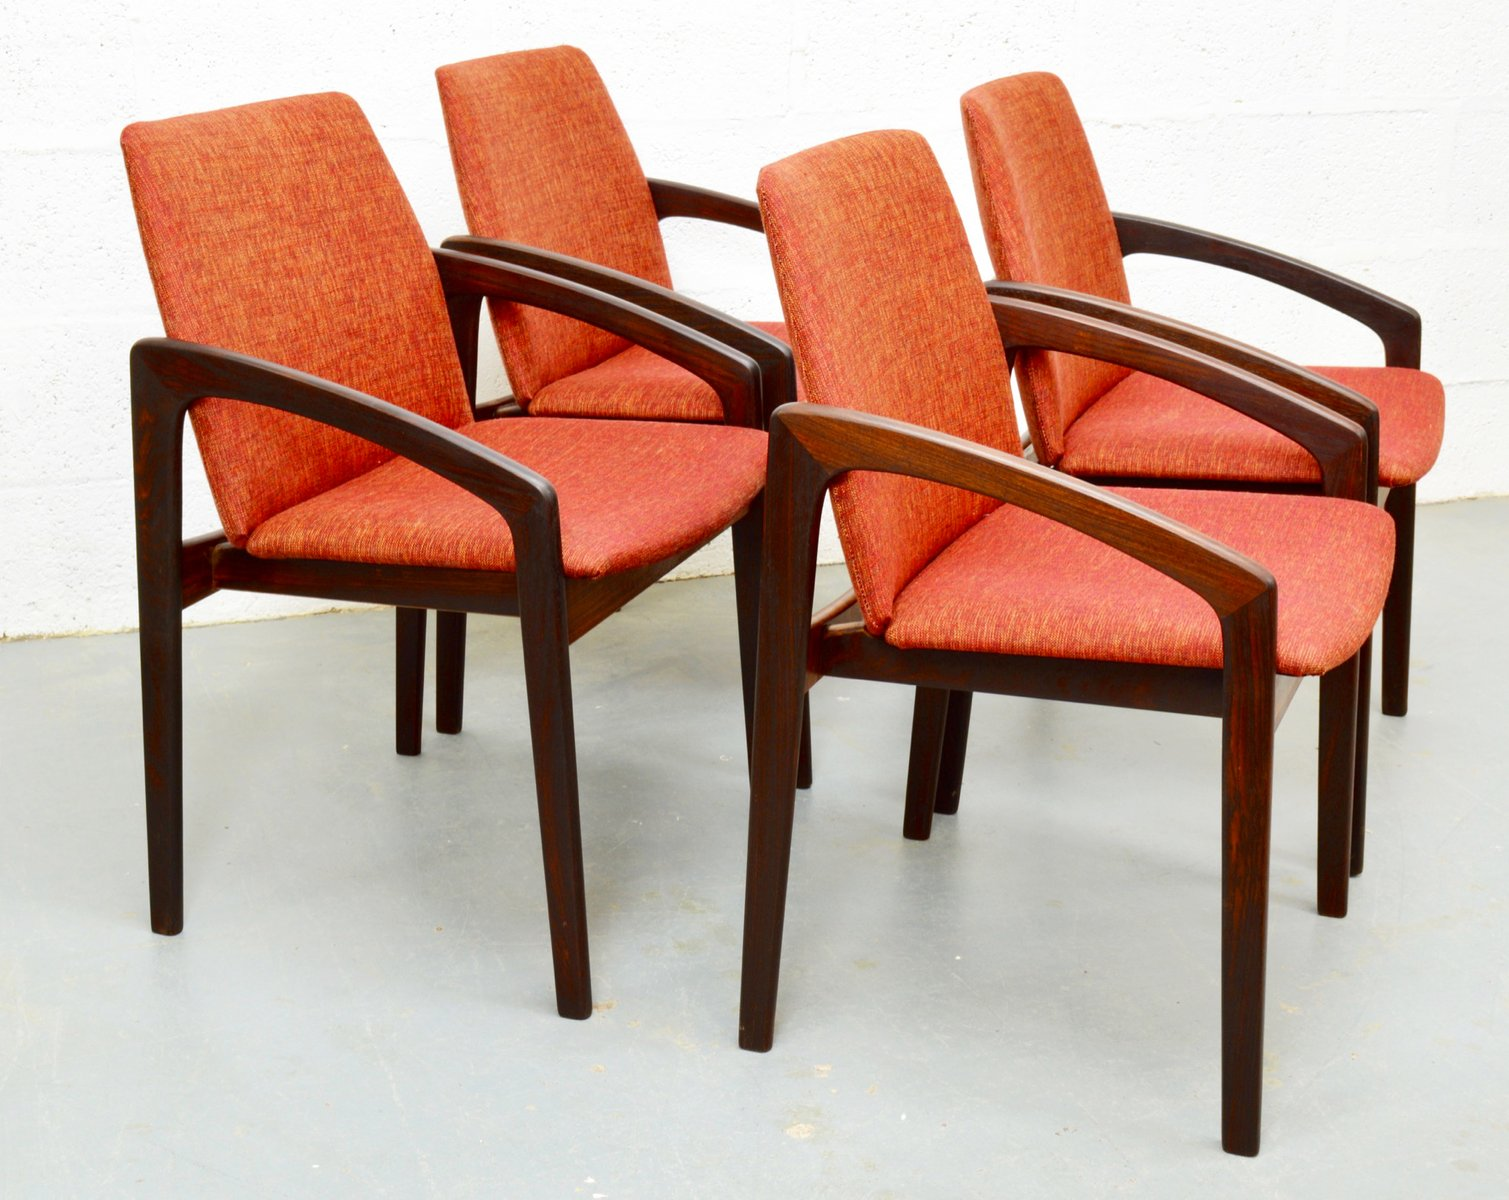 Mid Century Rosewood Danish Chairs By Kai Kristiansen For Korup, Set Of 4